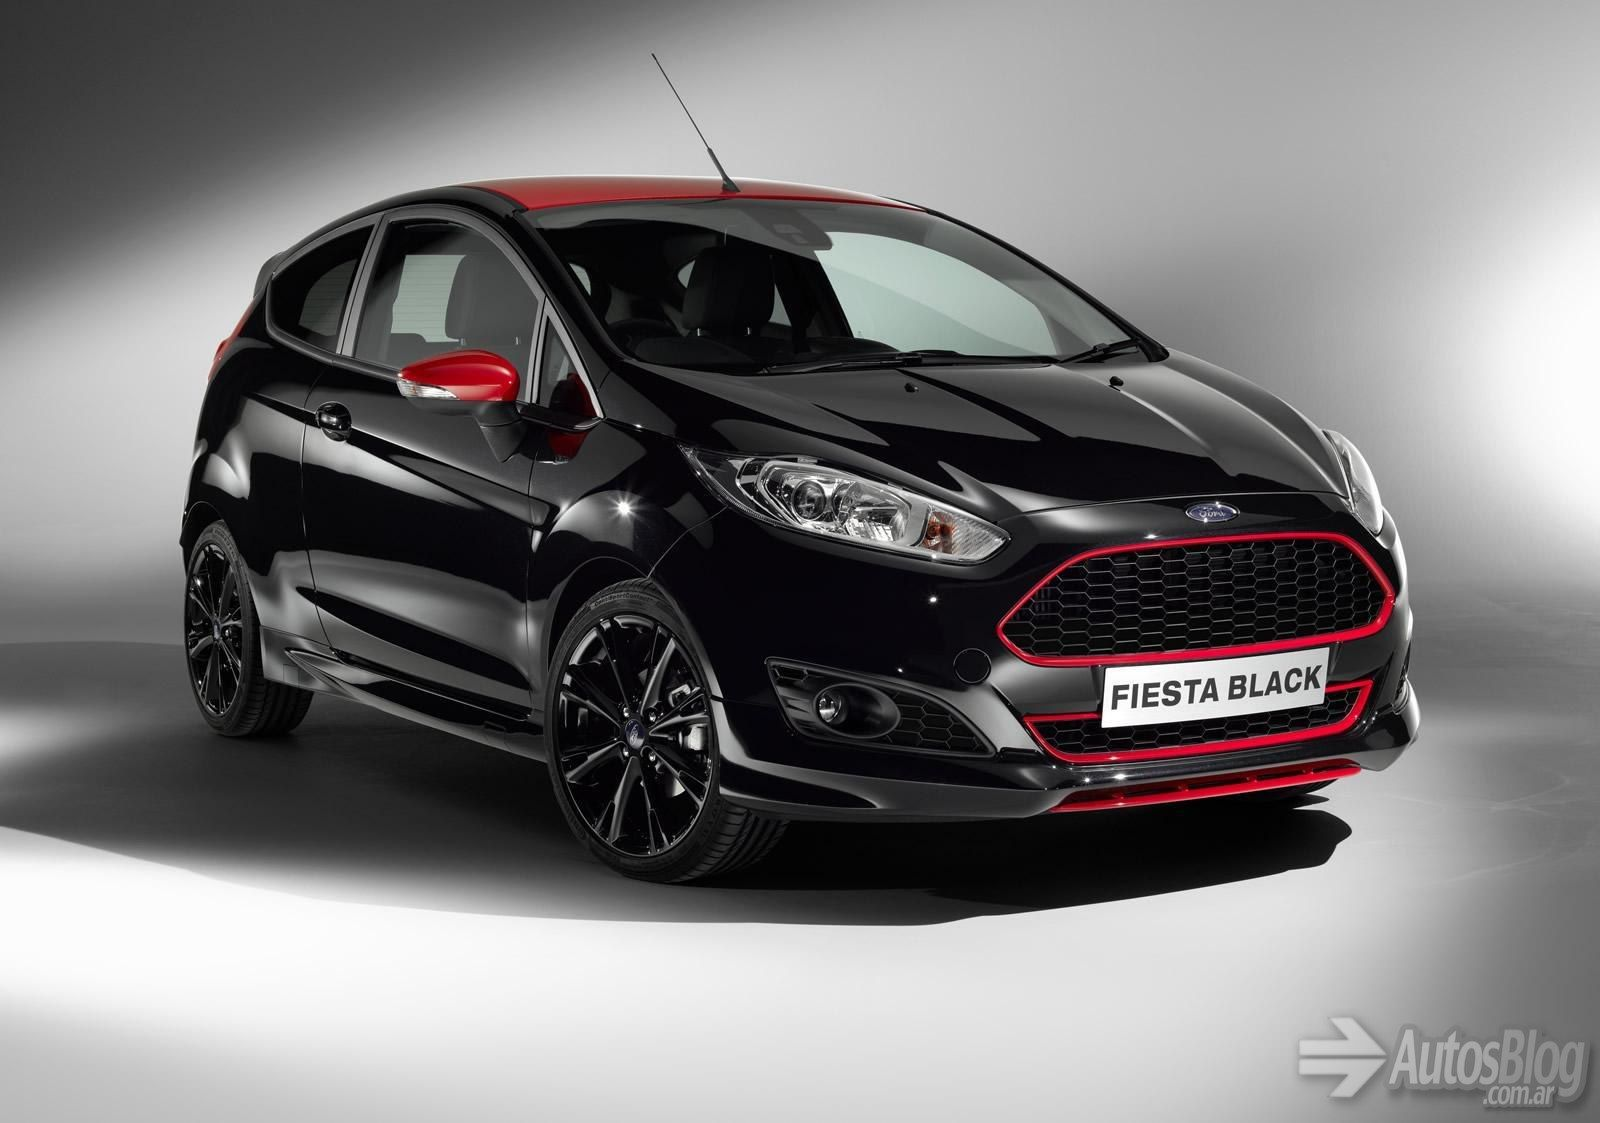 Ford fiesta zetec s black and red edition autos blog